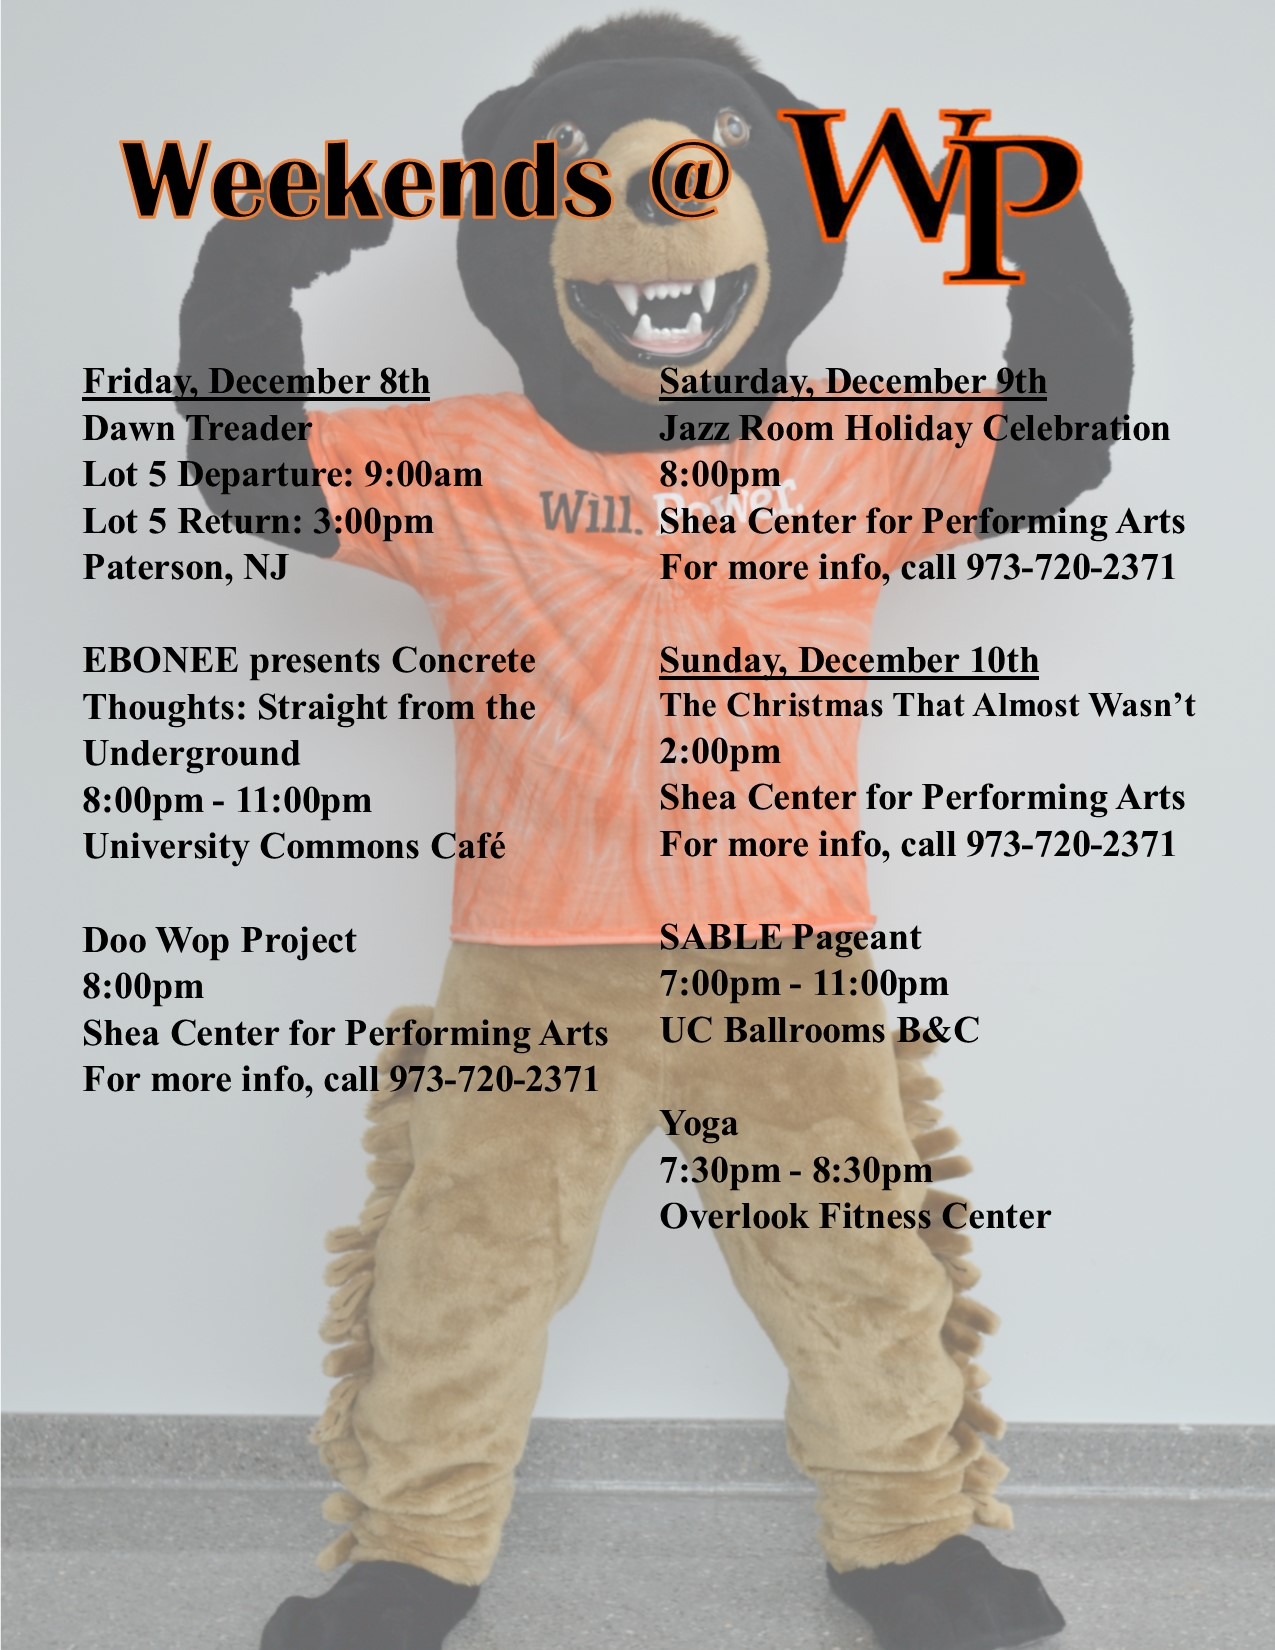 Weekends at WP - Friday, December 8th to Sunday, December 10th